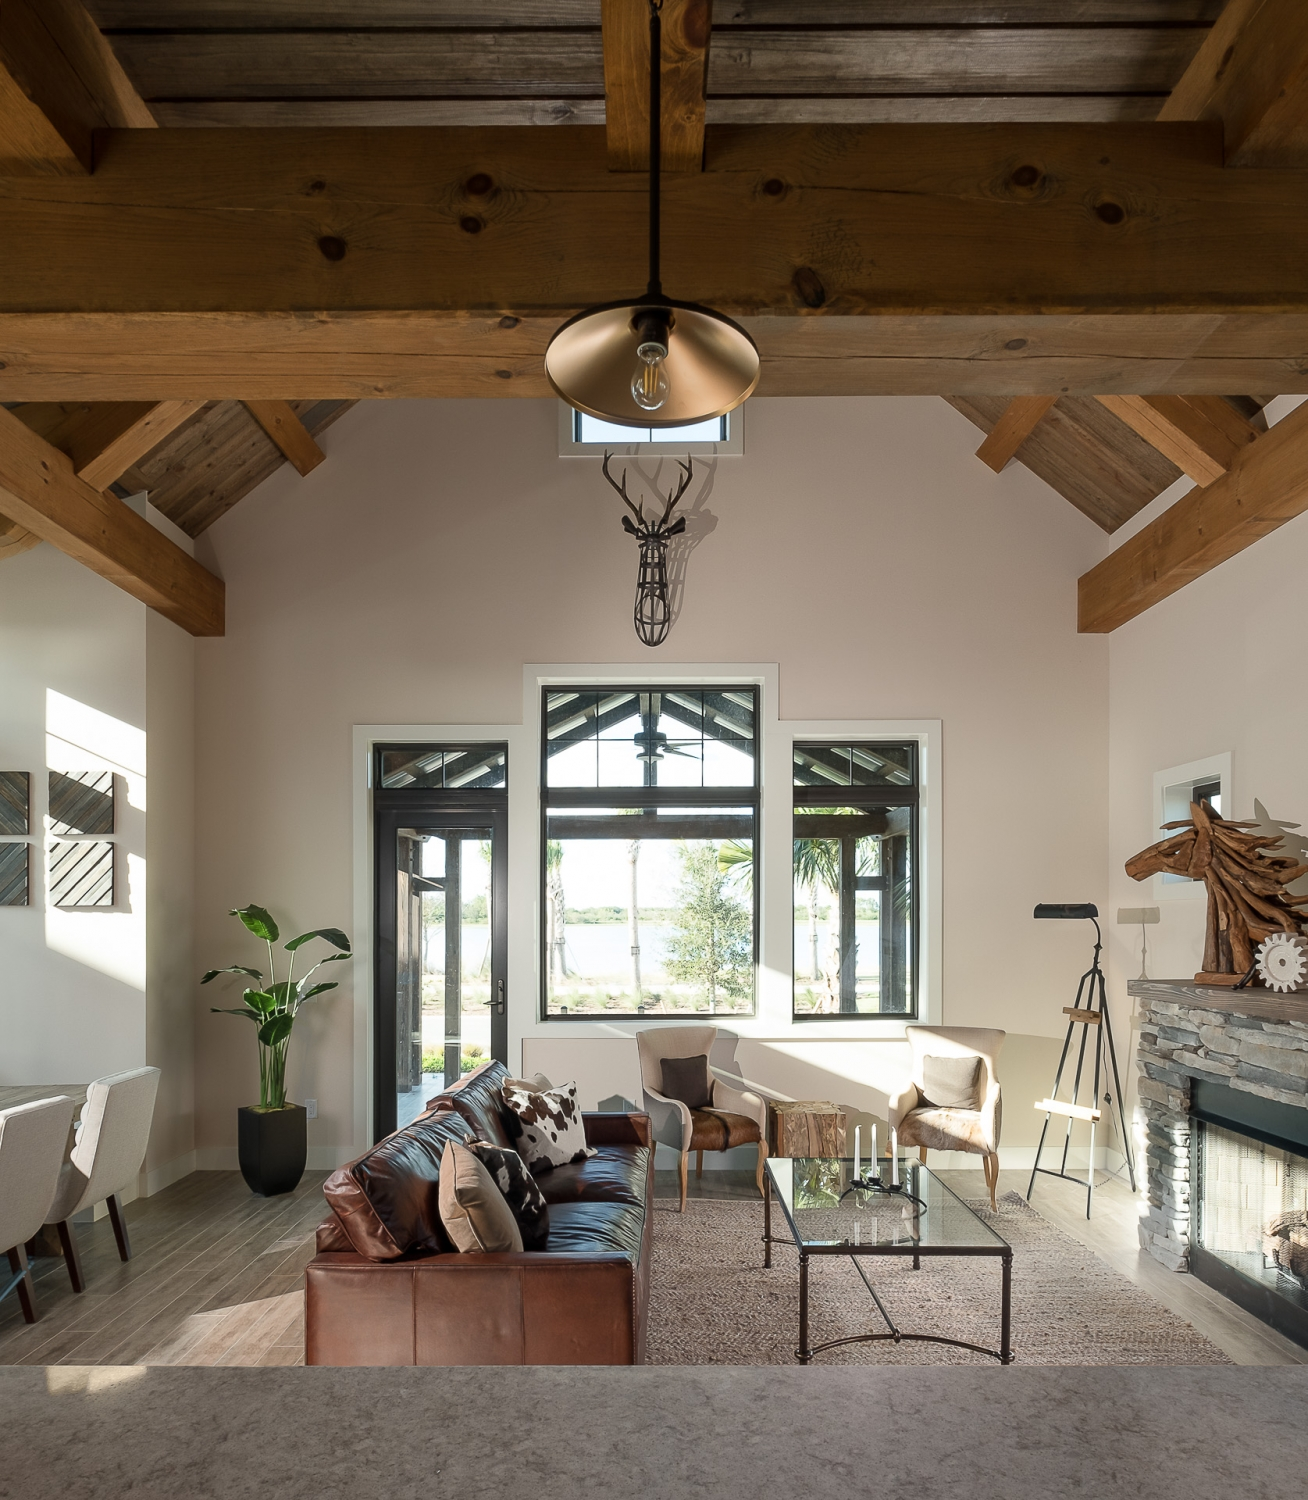 Architectural And Interior Photography: Architectural Interior Design Photography Ft Meyers Solar